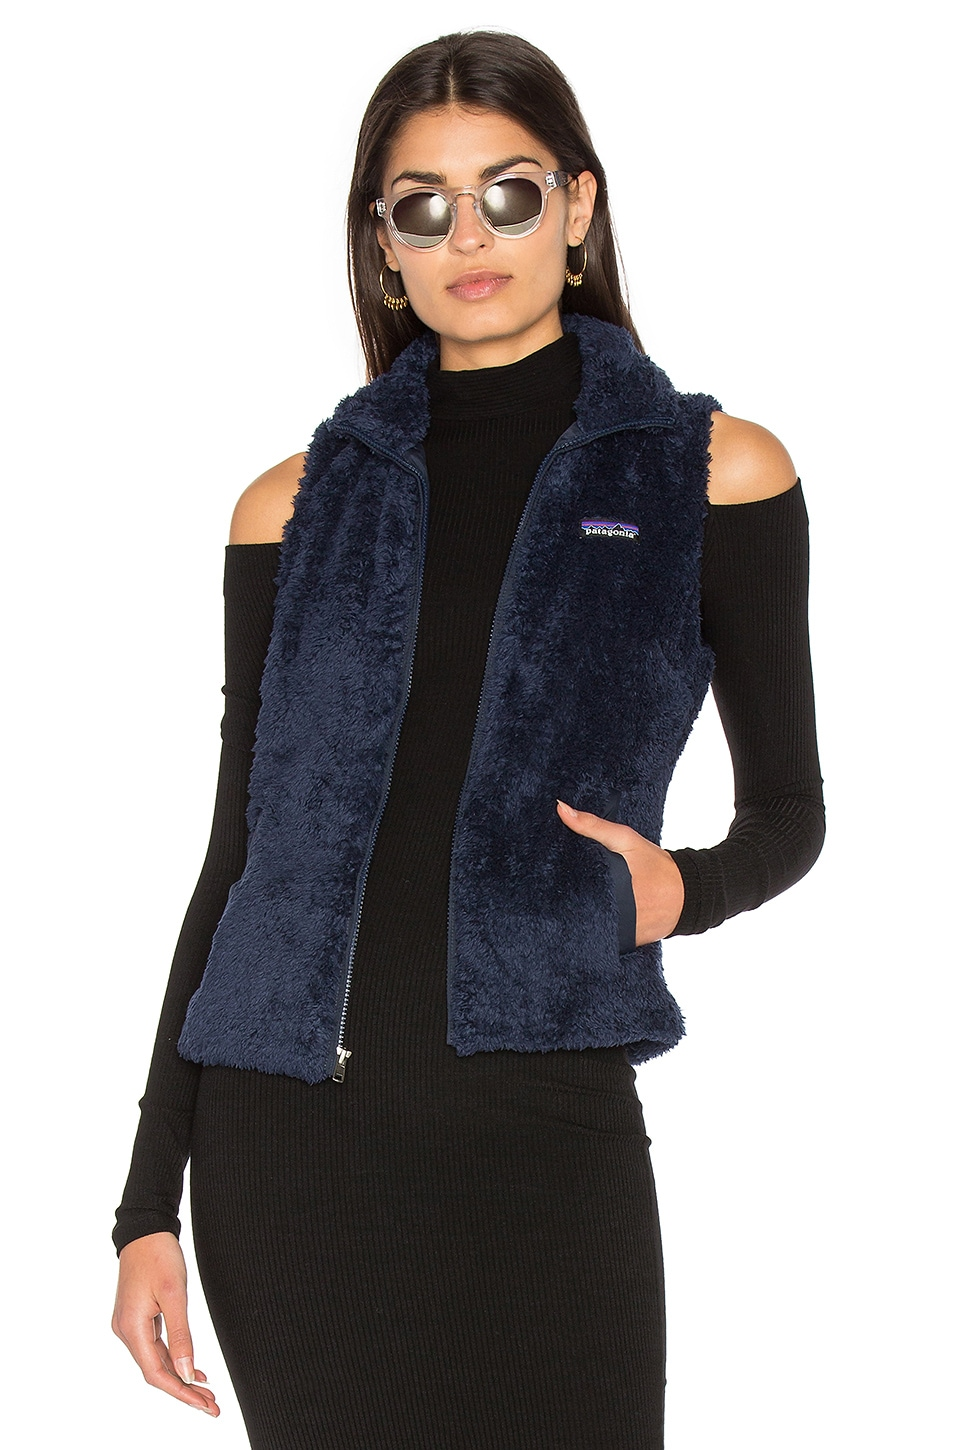 Patagonia Los Gatos Vest in Navy Blue